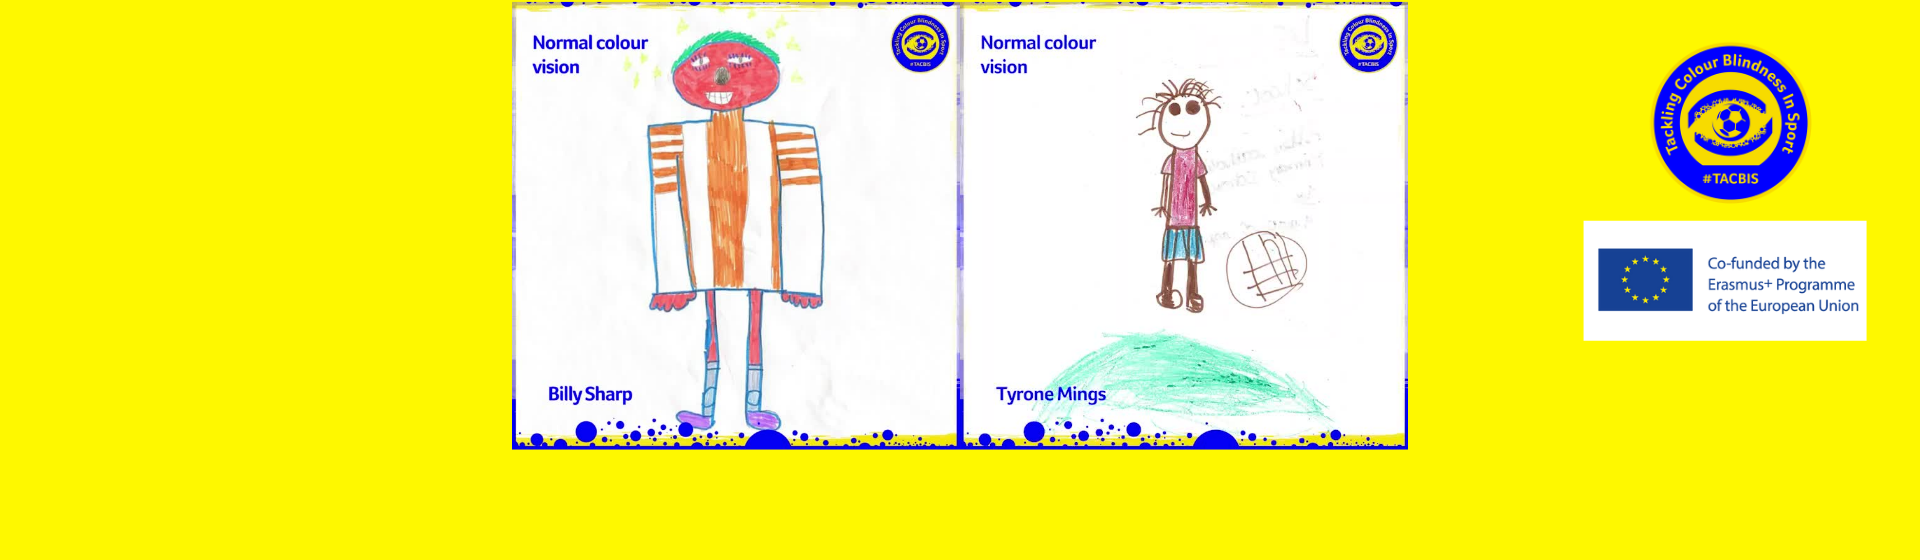 TACBIS reveals drawing competition winners header